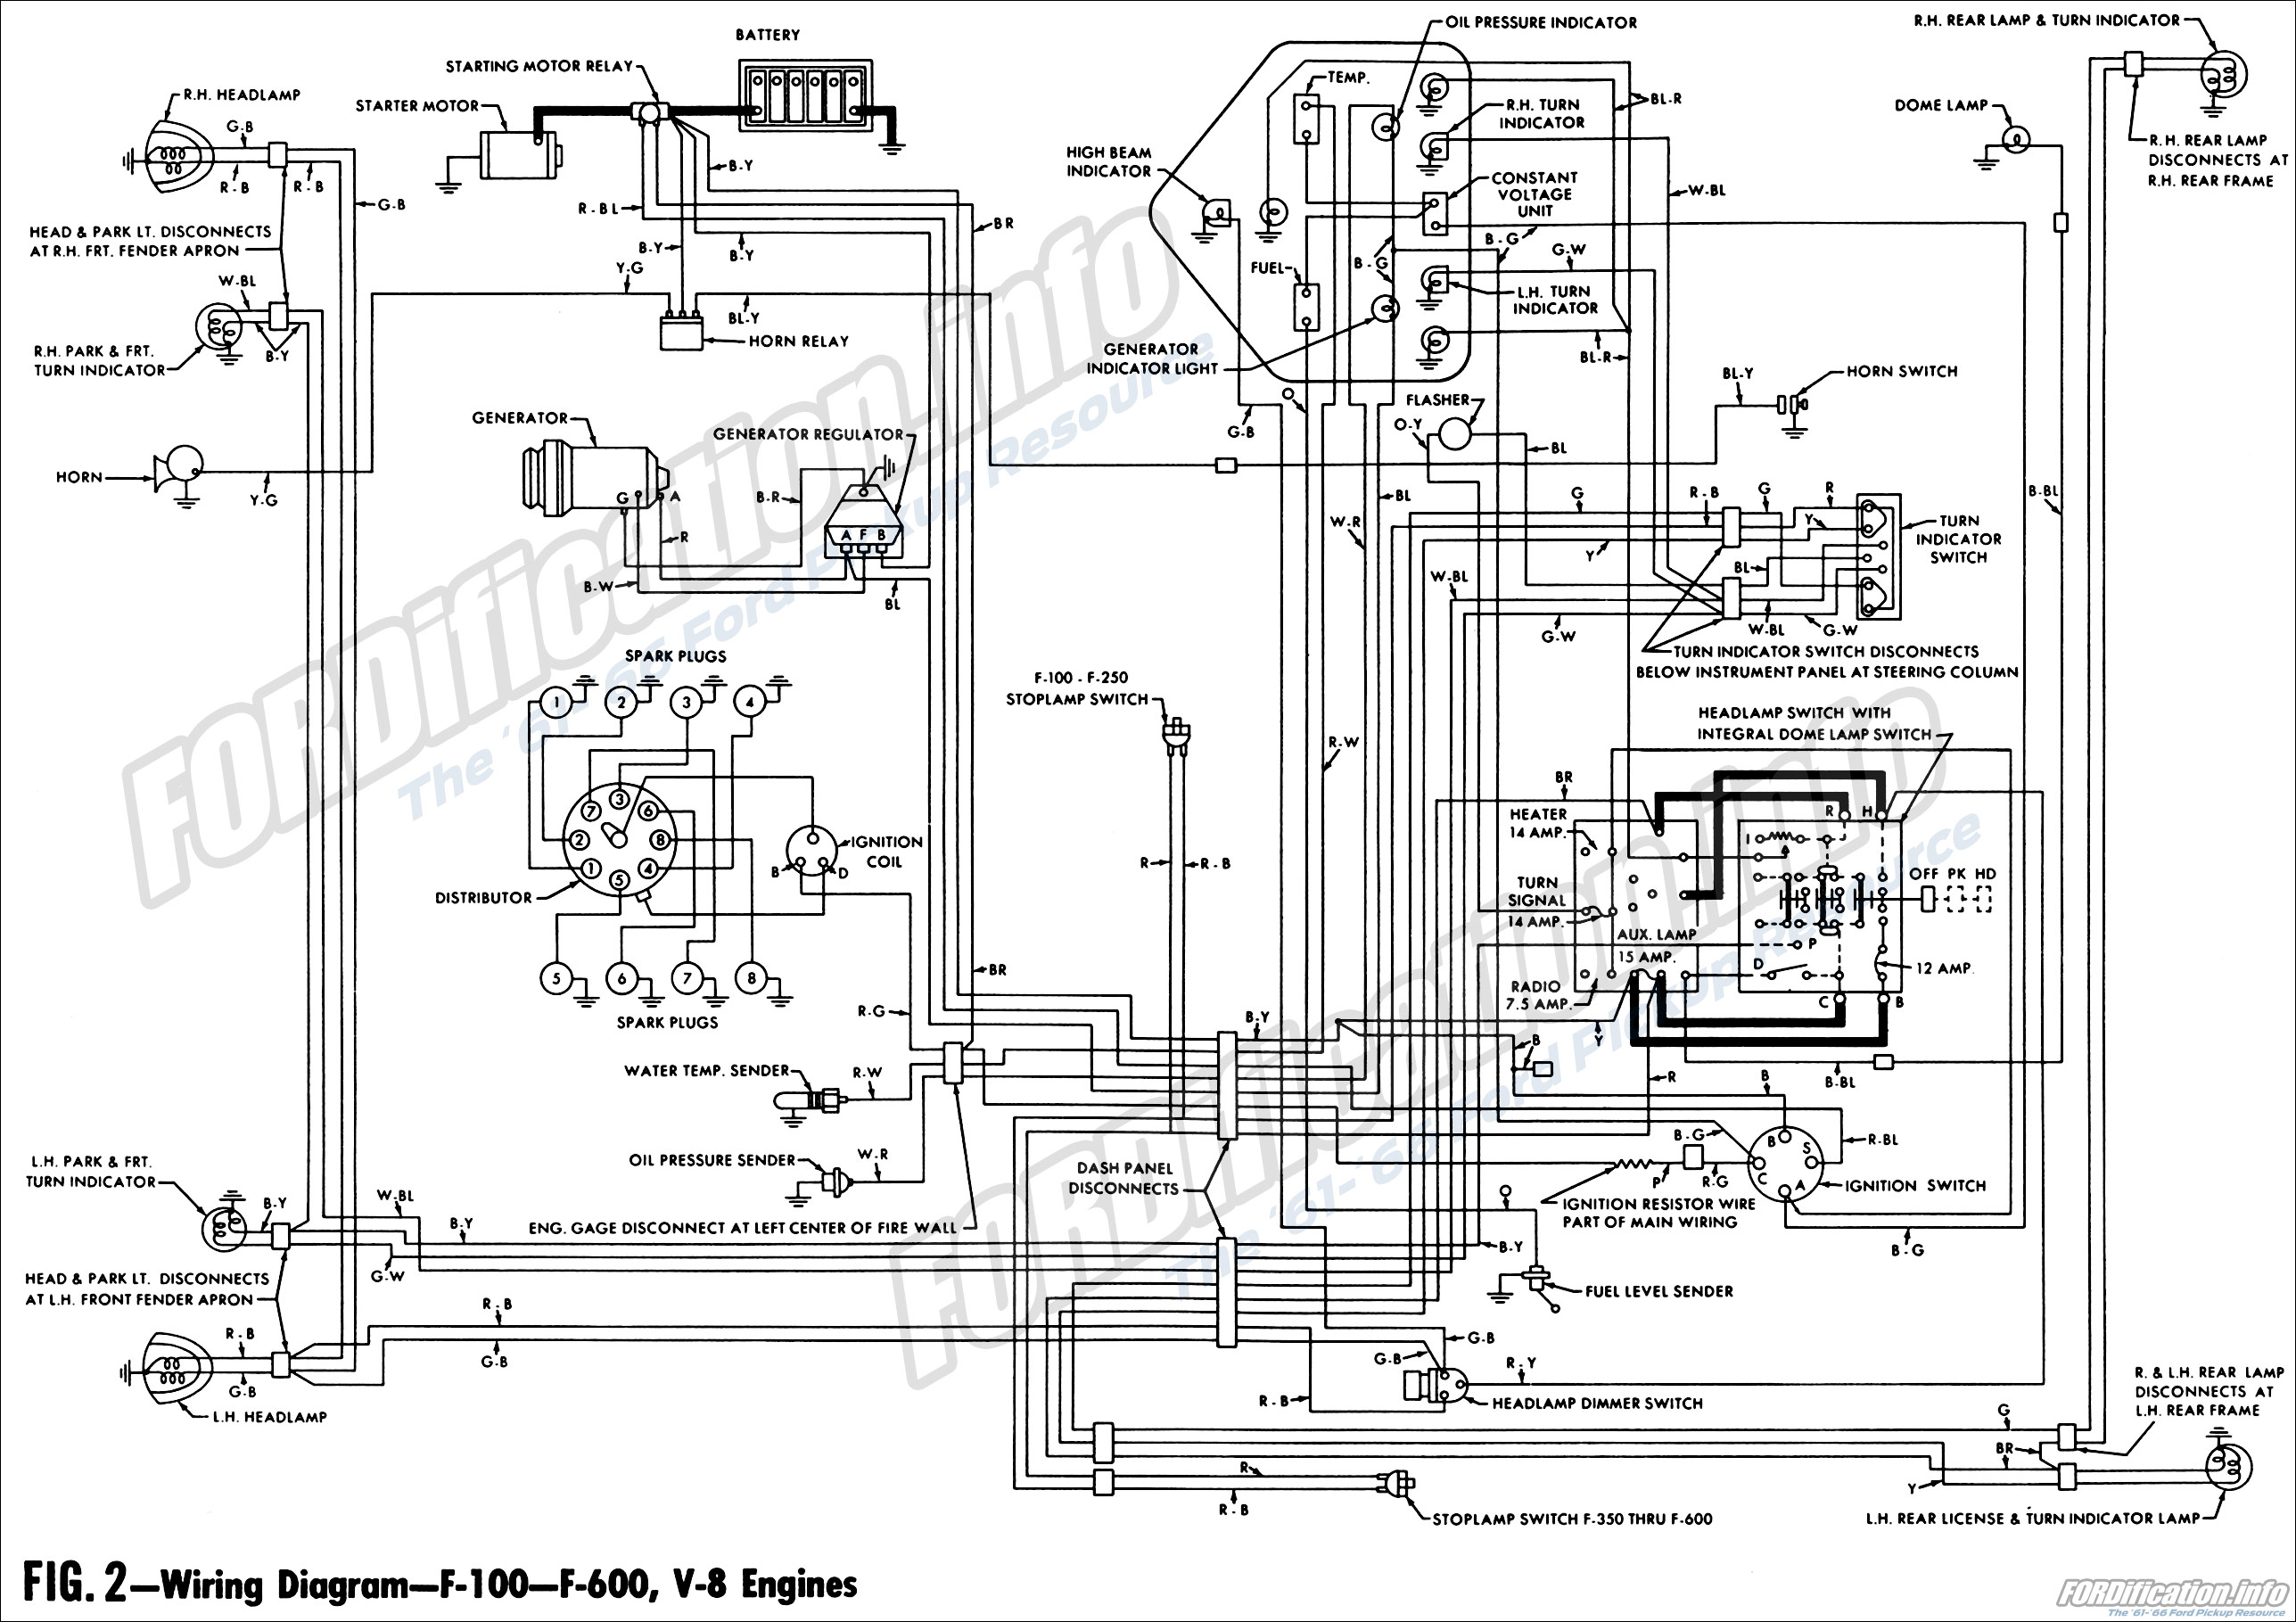 wiring diagram for 66 77 ford bronco 1961 ford truck wiring diagrams - fordification.info - the ... wiring diagram for 66 ford f100